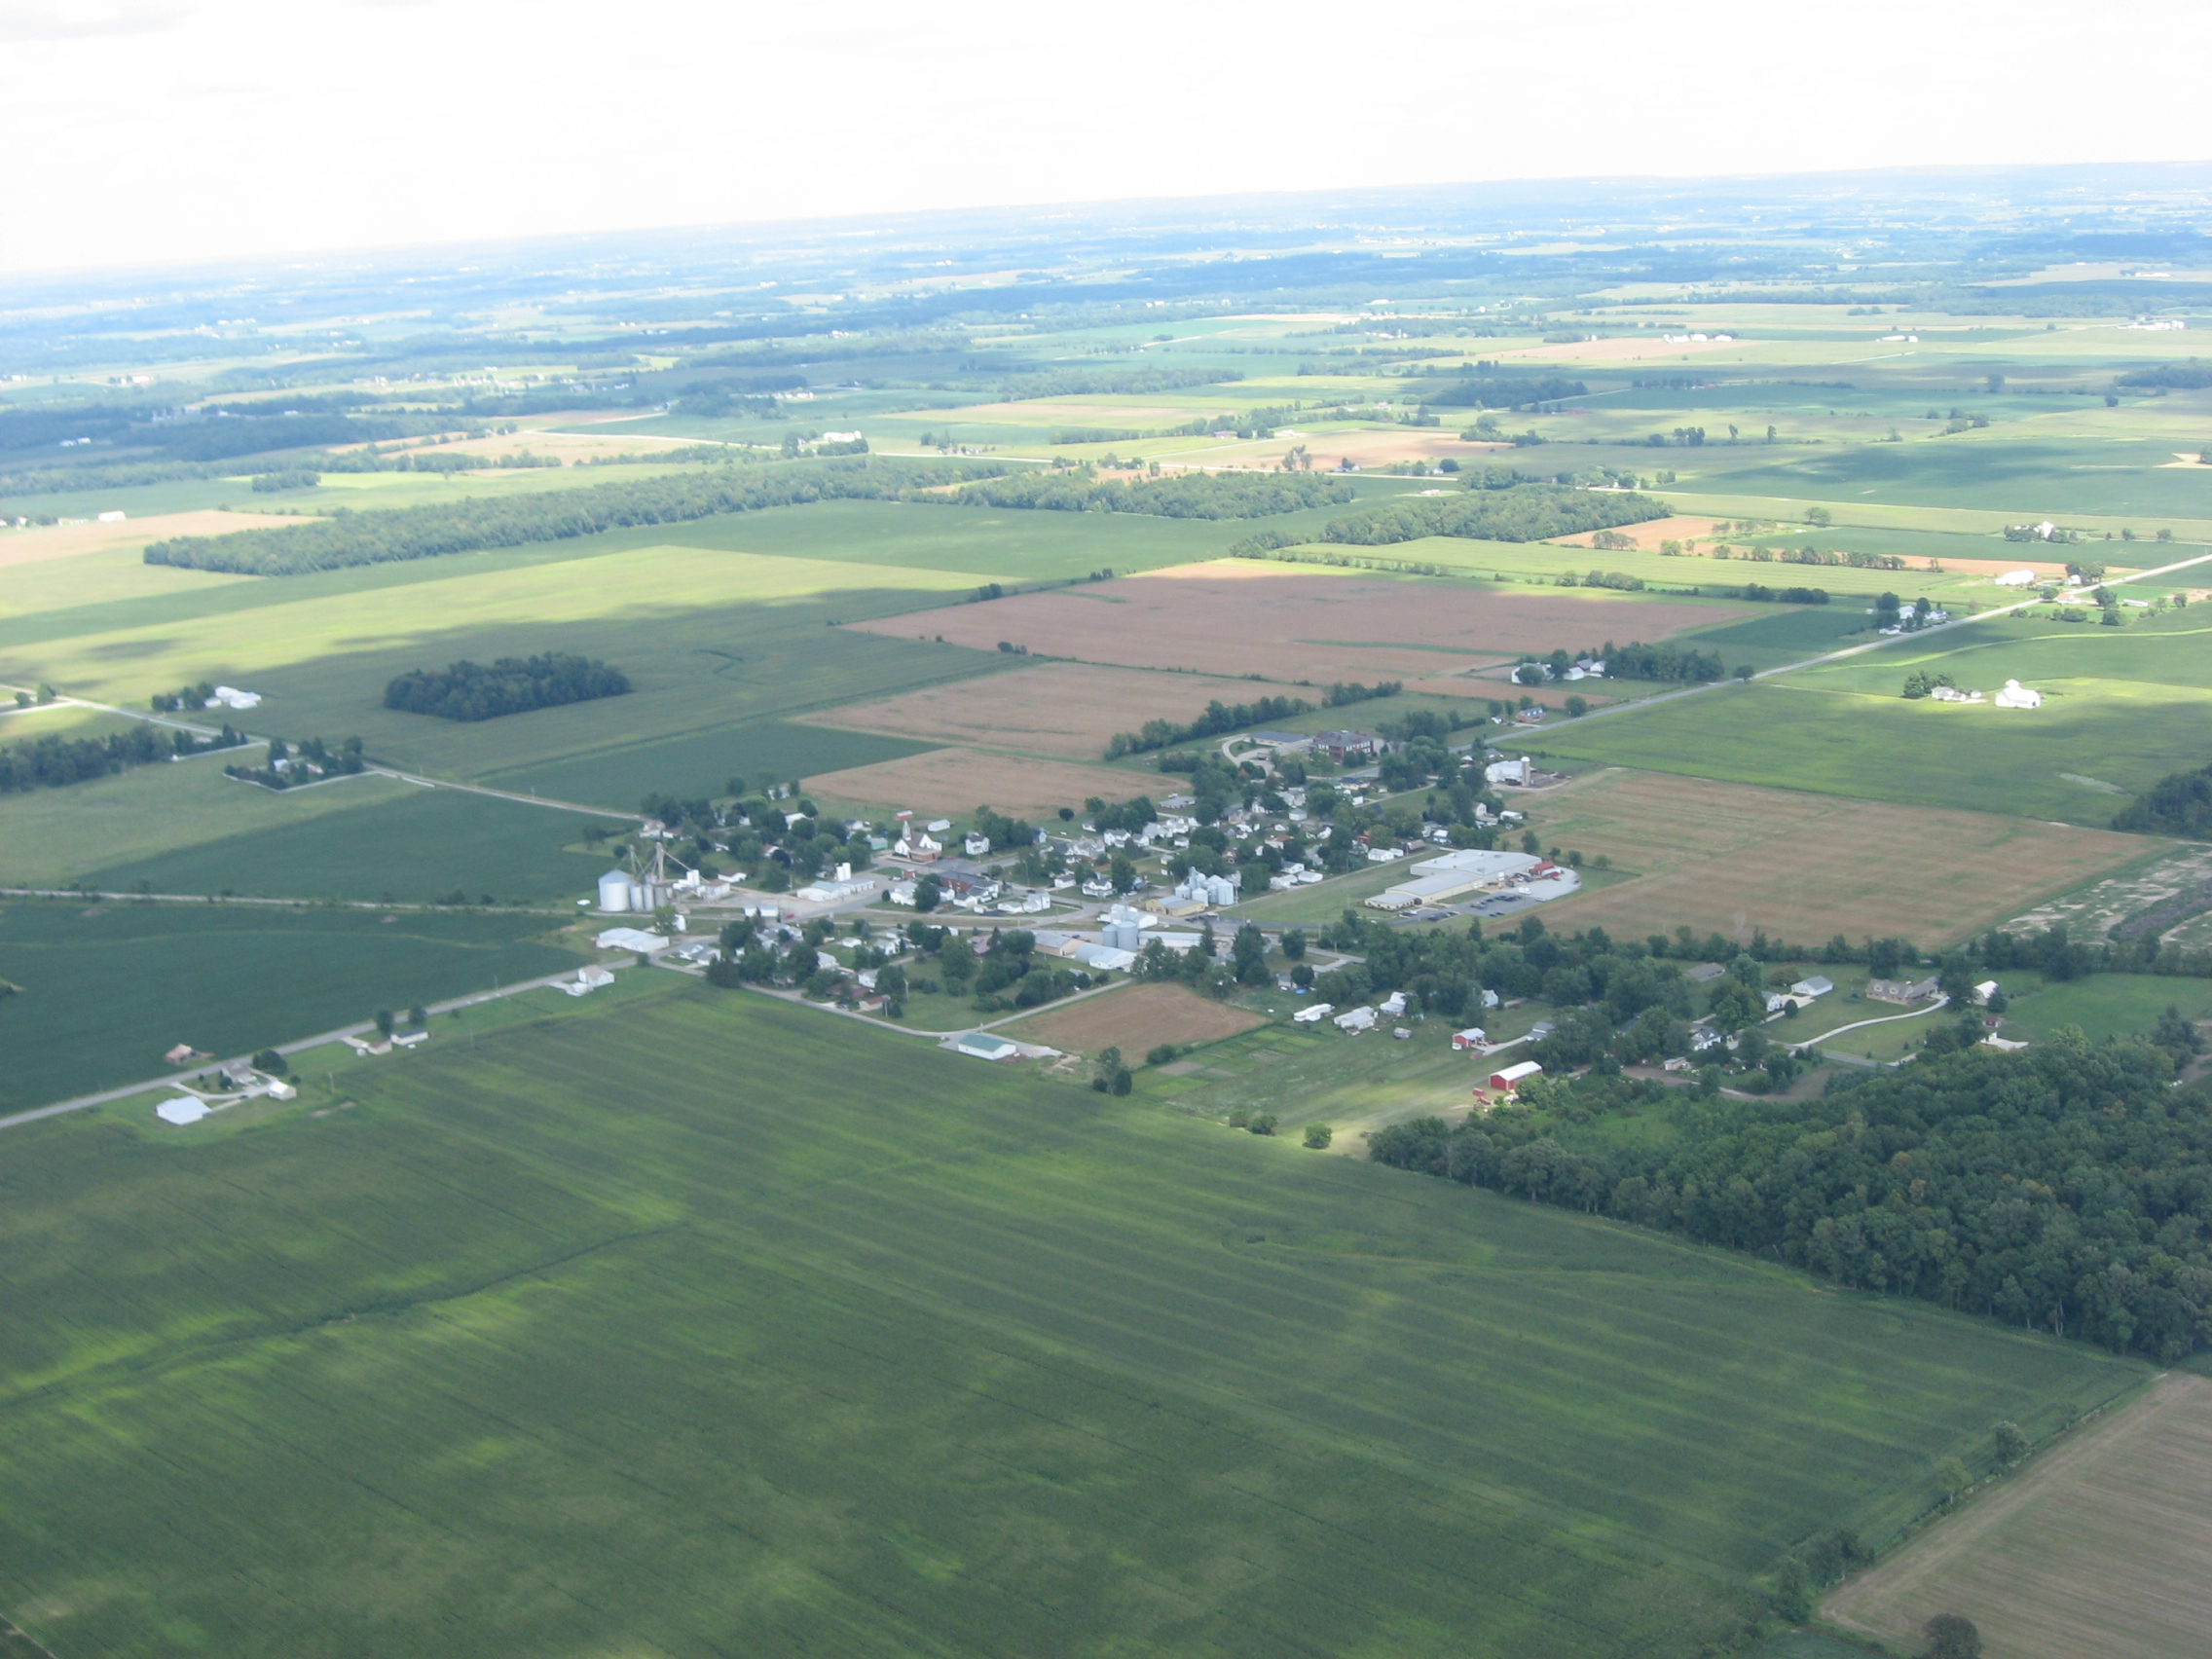 champaign county Find champaign county illinois assessor, assessment, auditor's, and appraiser's offices, revenue commissions, gis, and tax equalization departments assessors provide information on property.